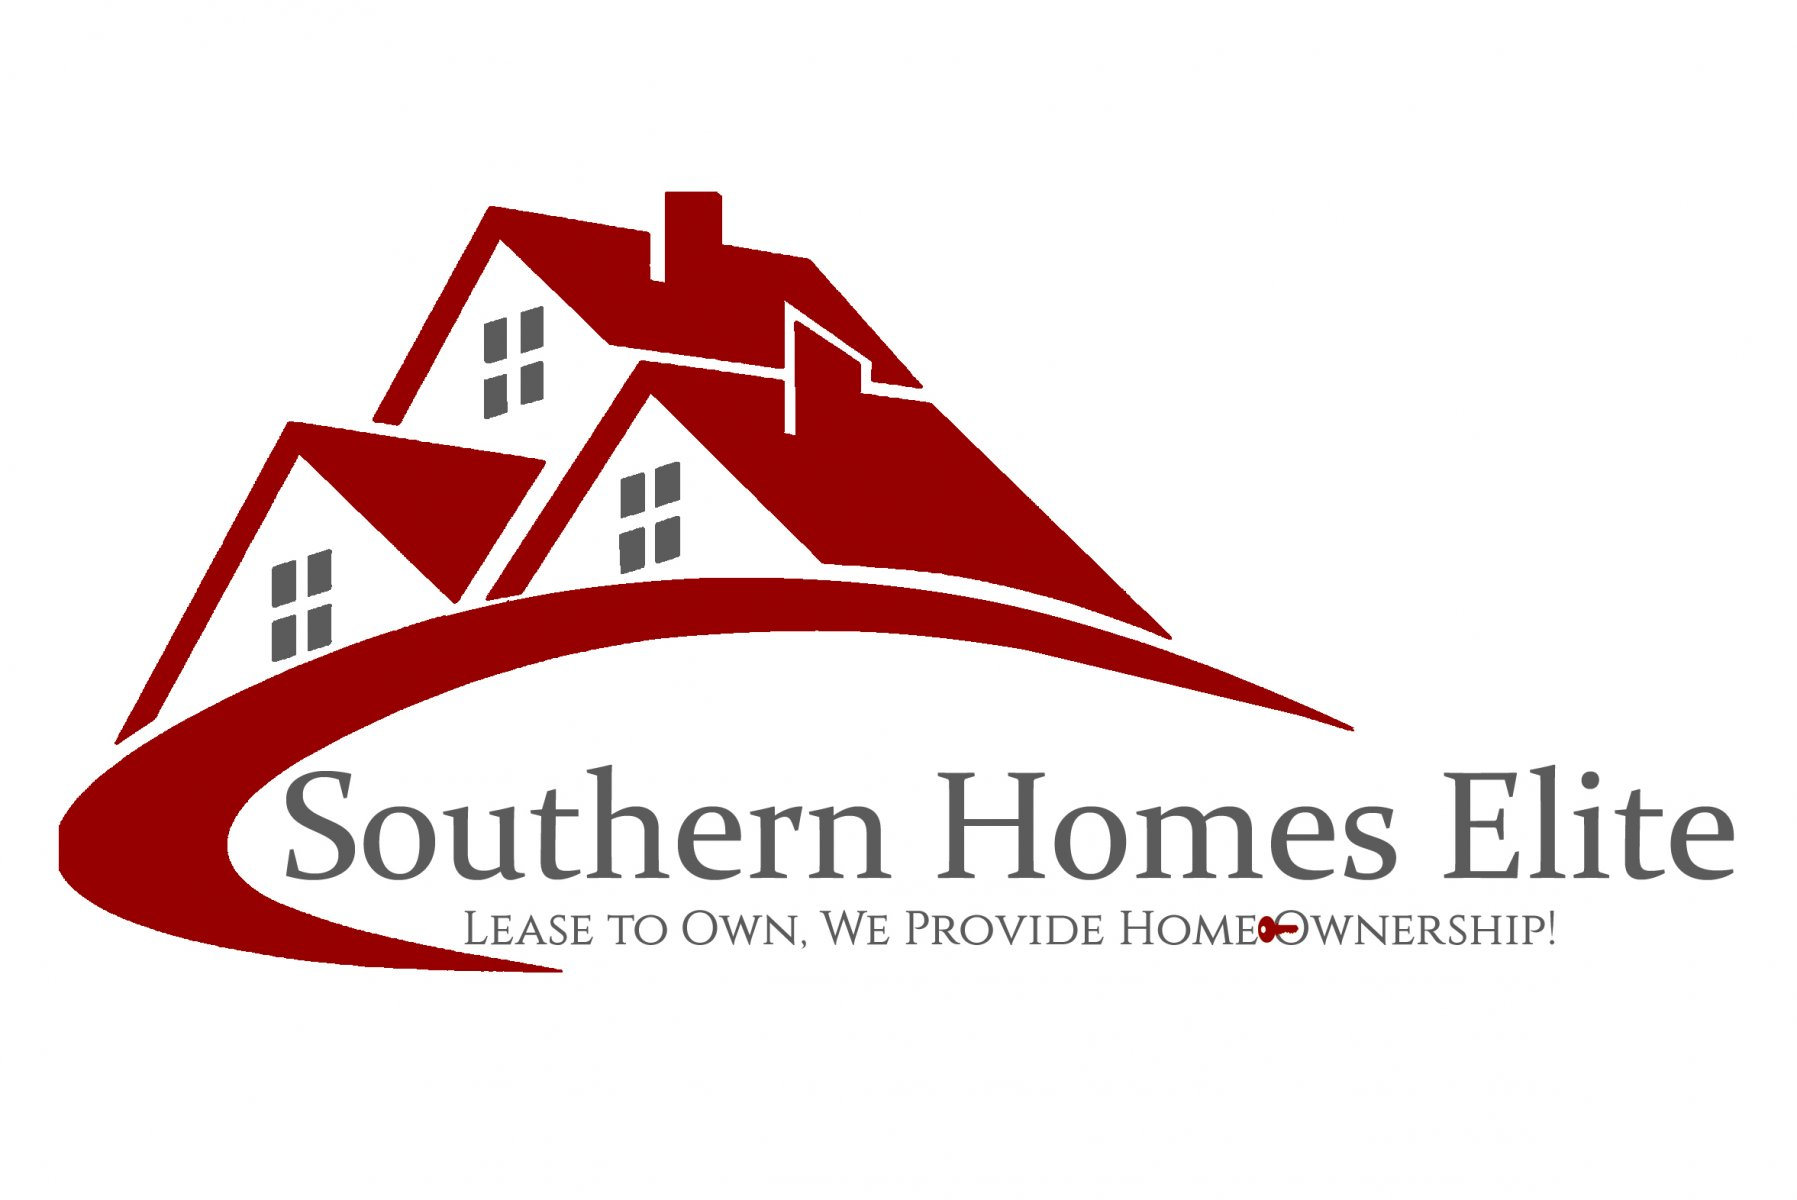 Southern Homes Elite logo